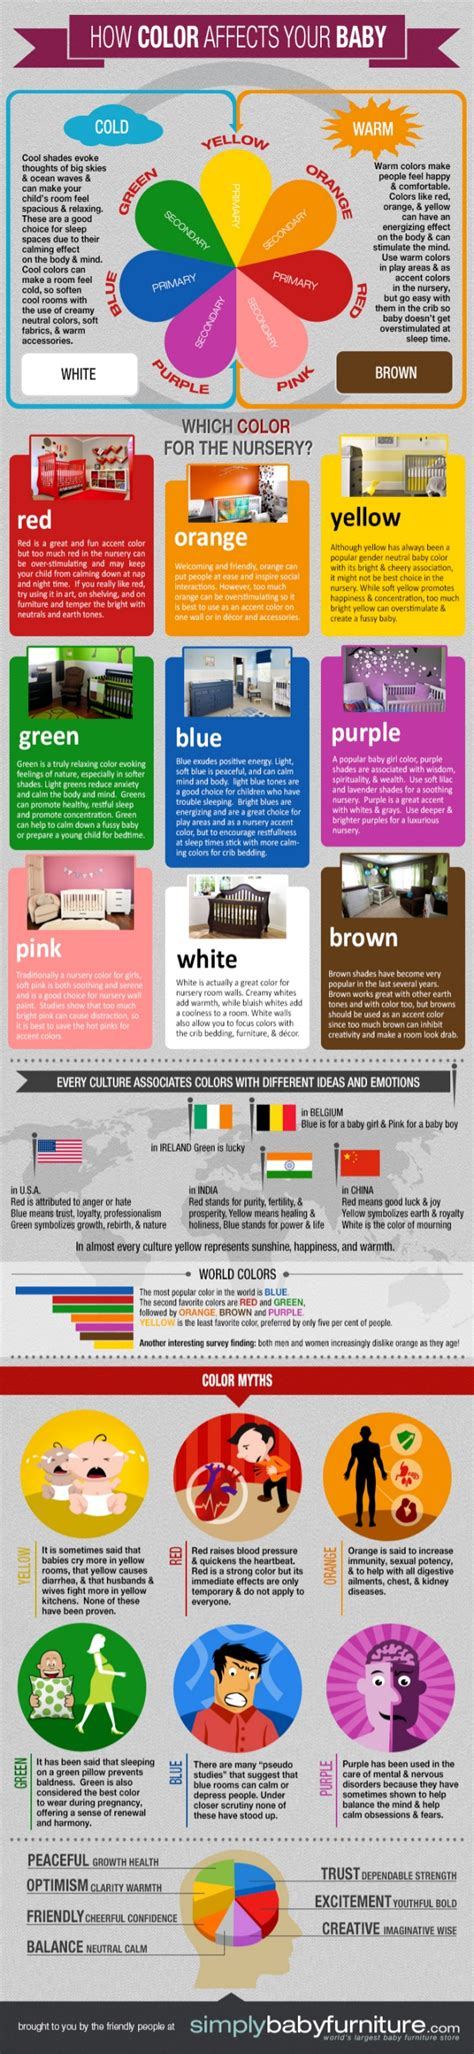 how colors affect your emotions nursery color guide how color affects your baby s mood